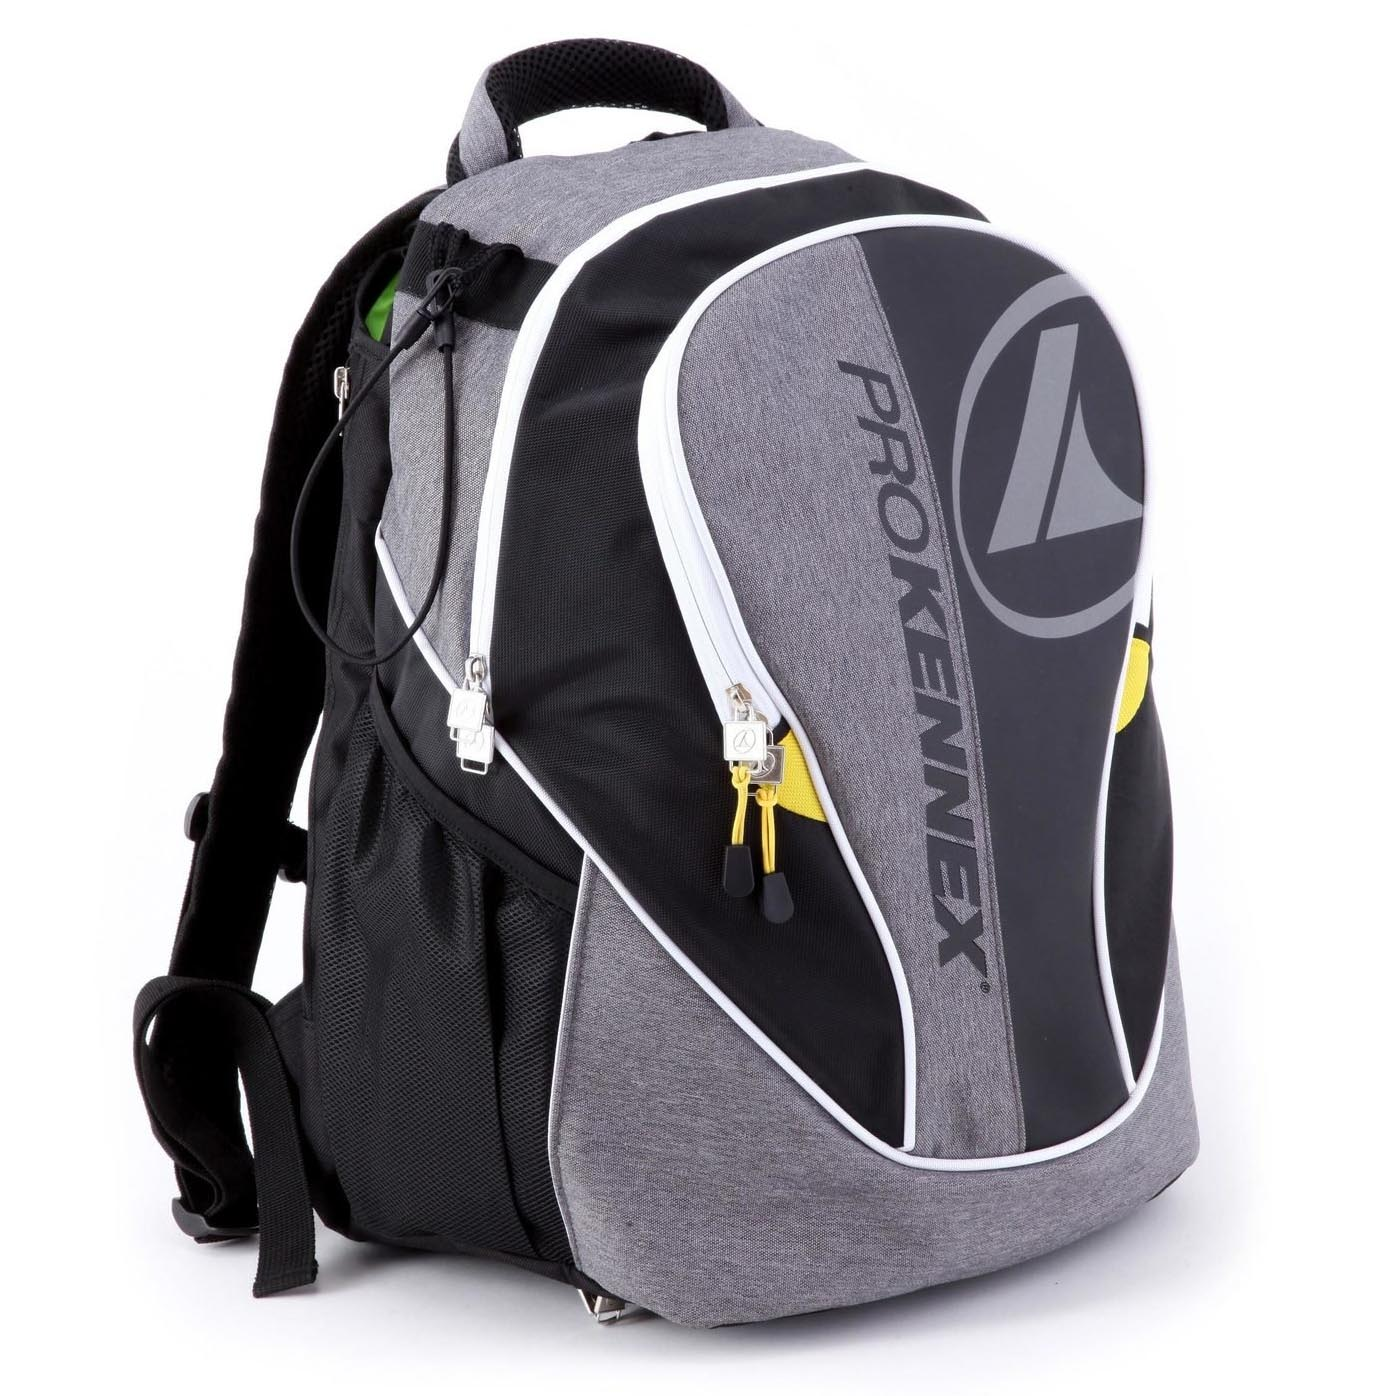 ProKennex Ki Backpack